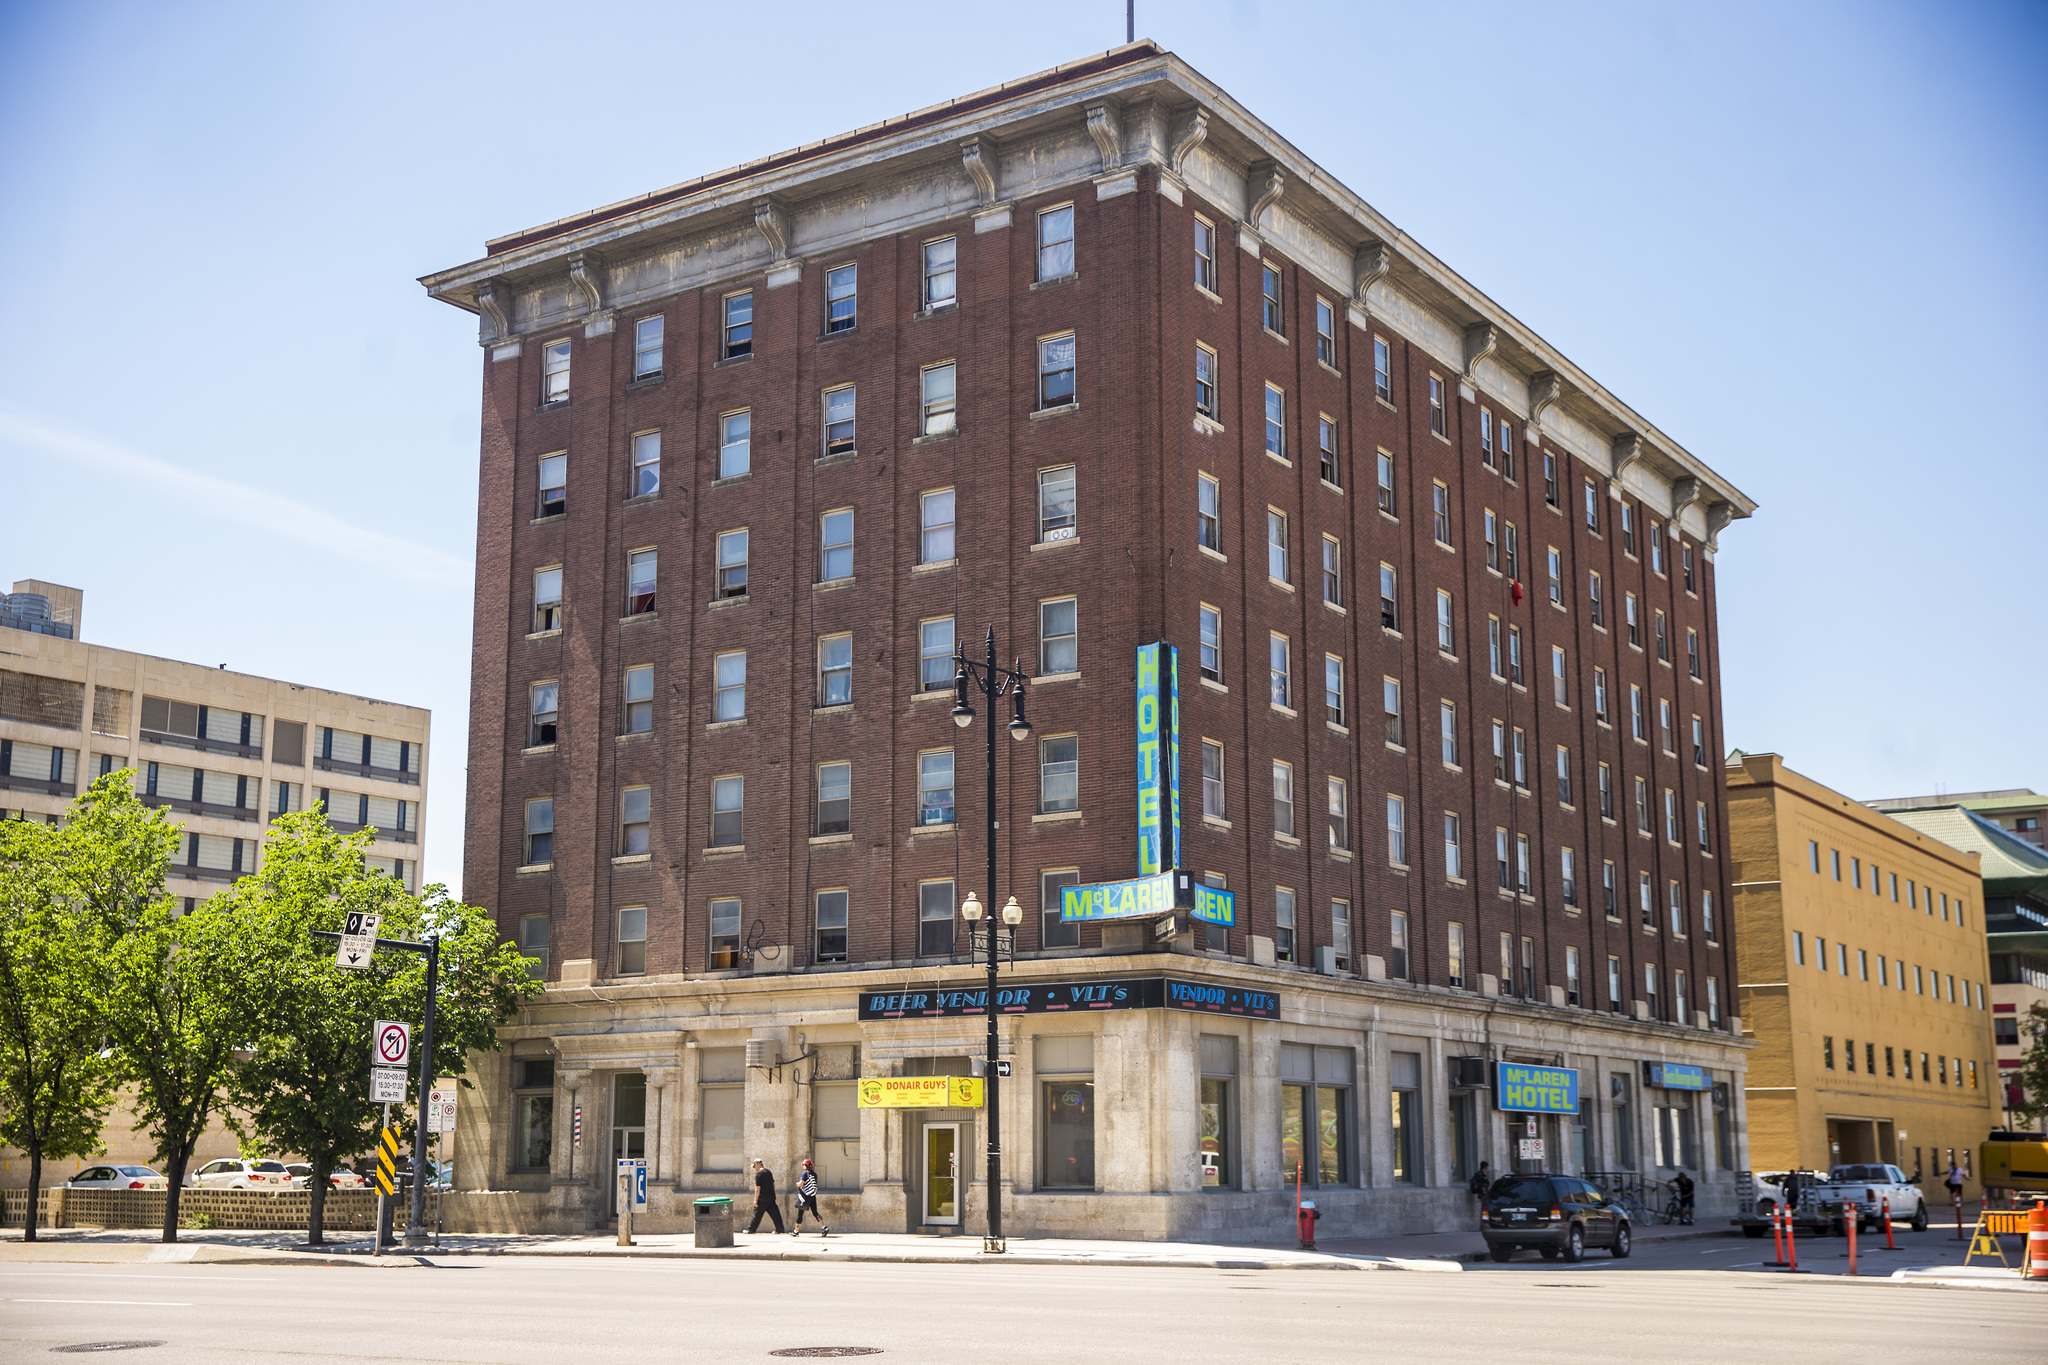 The east and north facades of the McLaren Hotel have been added to the city's historical resources list. (Mikaela MacKenzie / Winnipeg Free Press)</p>